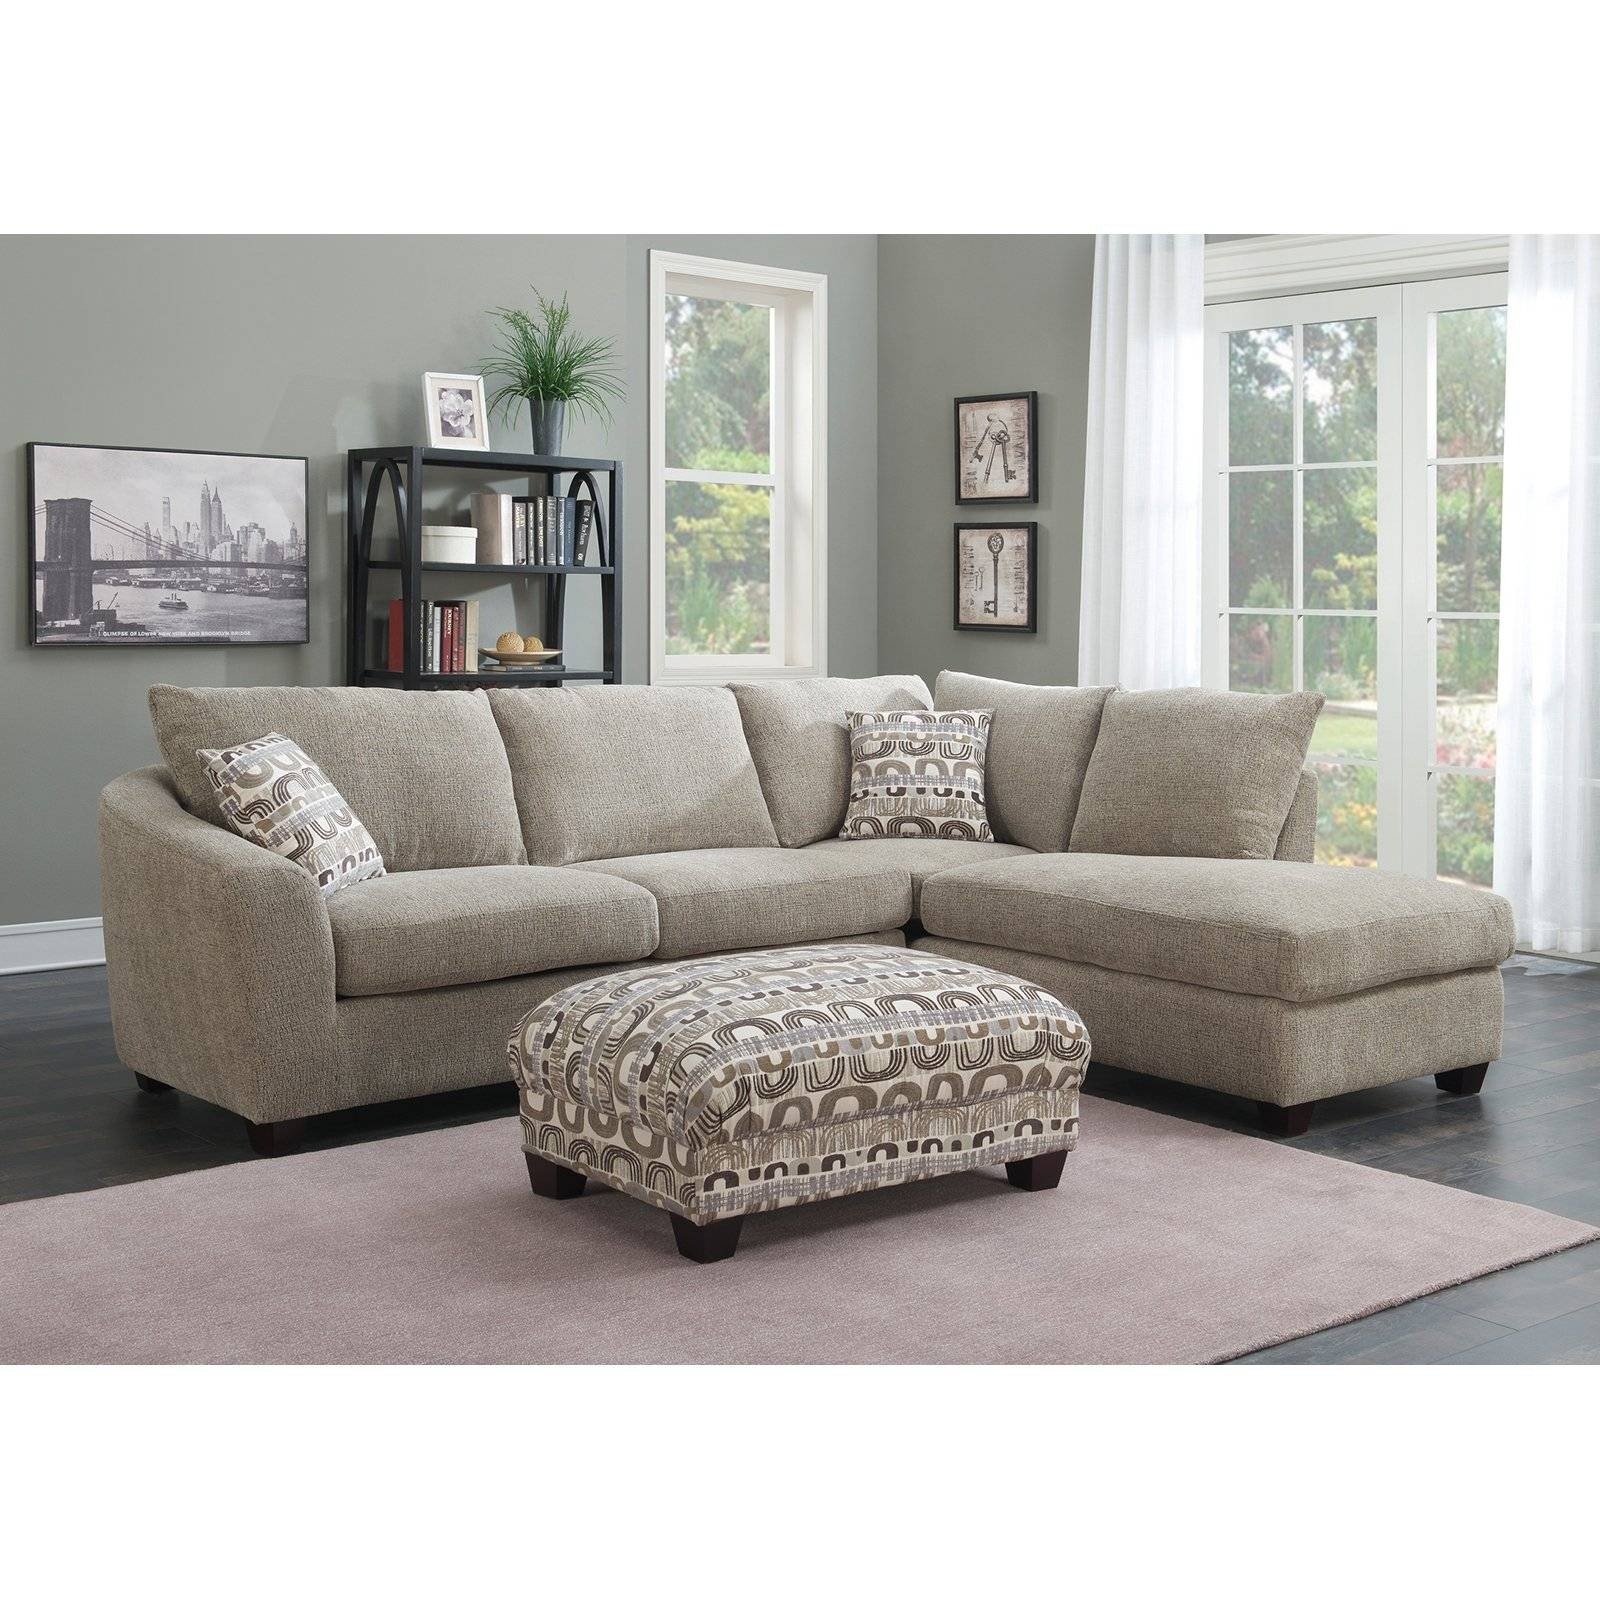 Emerald Home Urbana 2 Piece Sectional Sofa With Chaise – Walmart With Sectional Sofa With 2 Chaises (View 18 of 30)